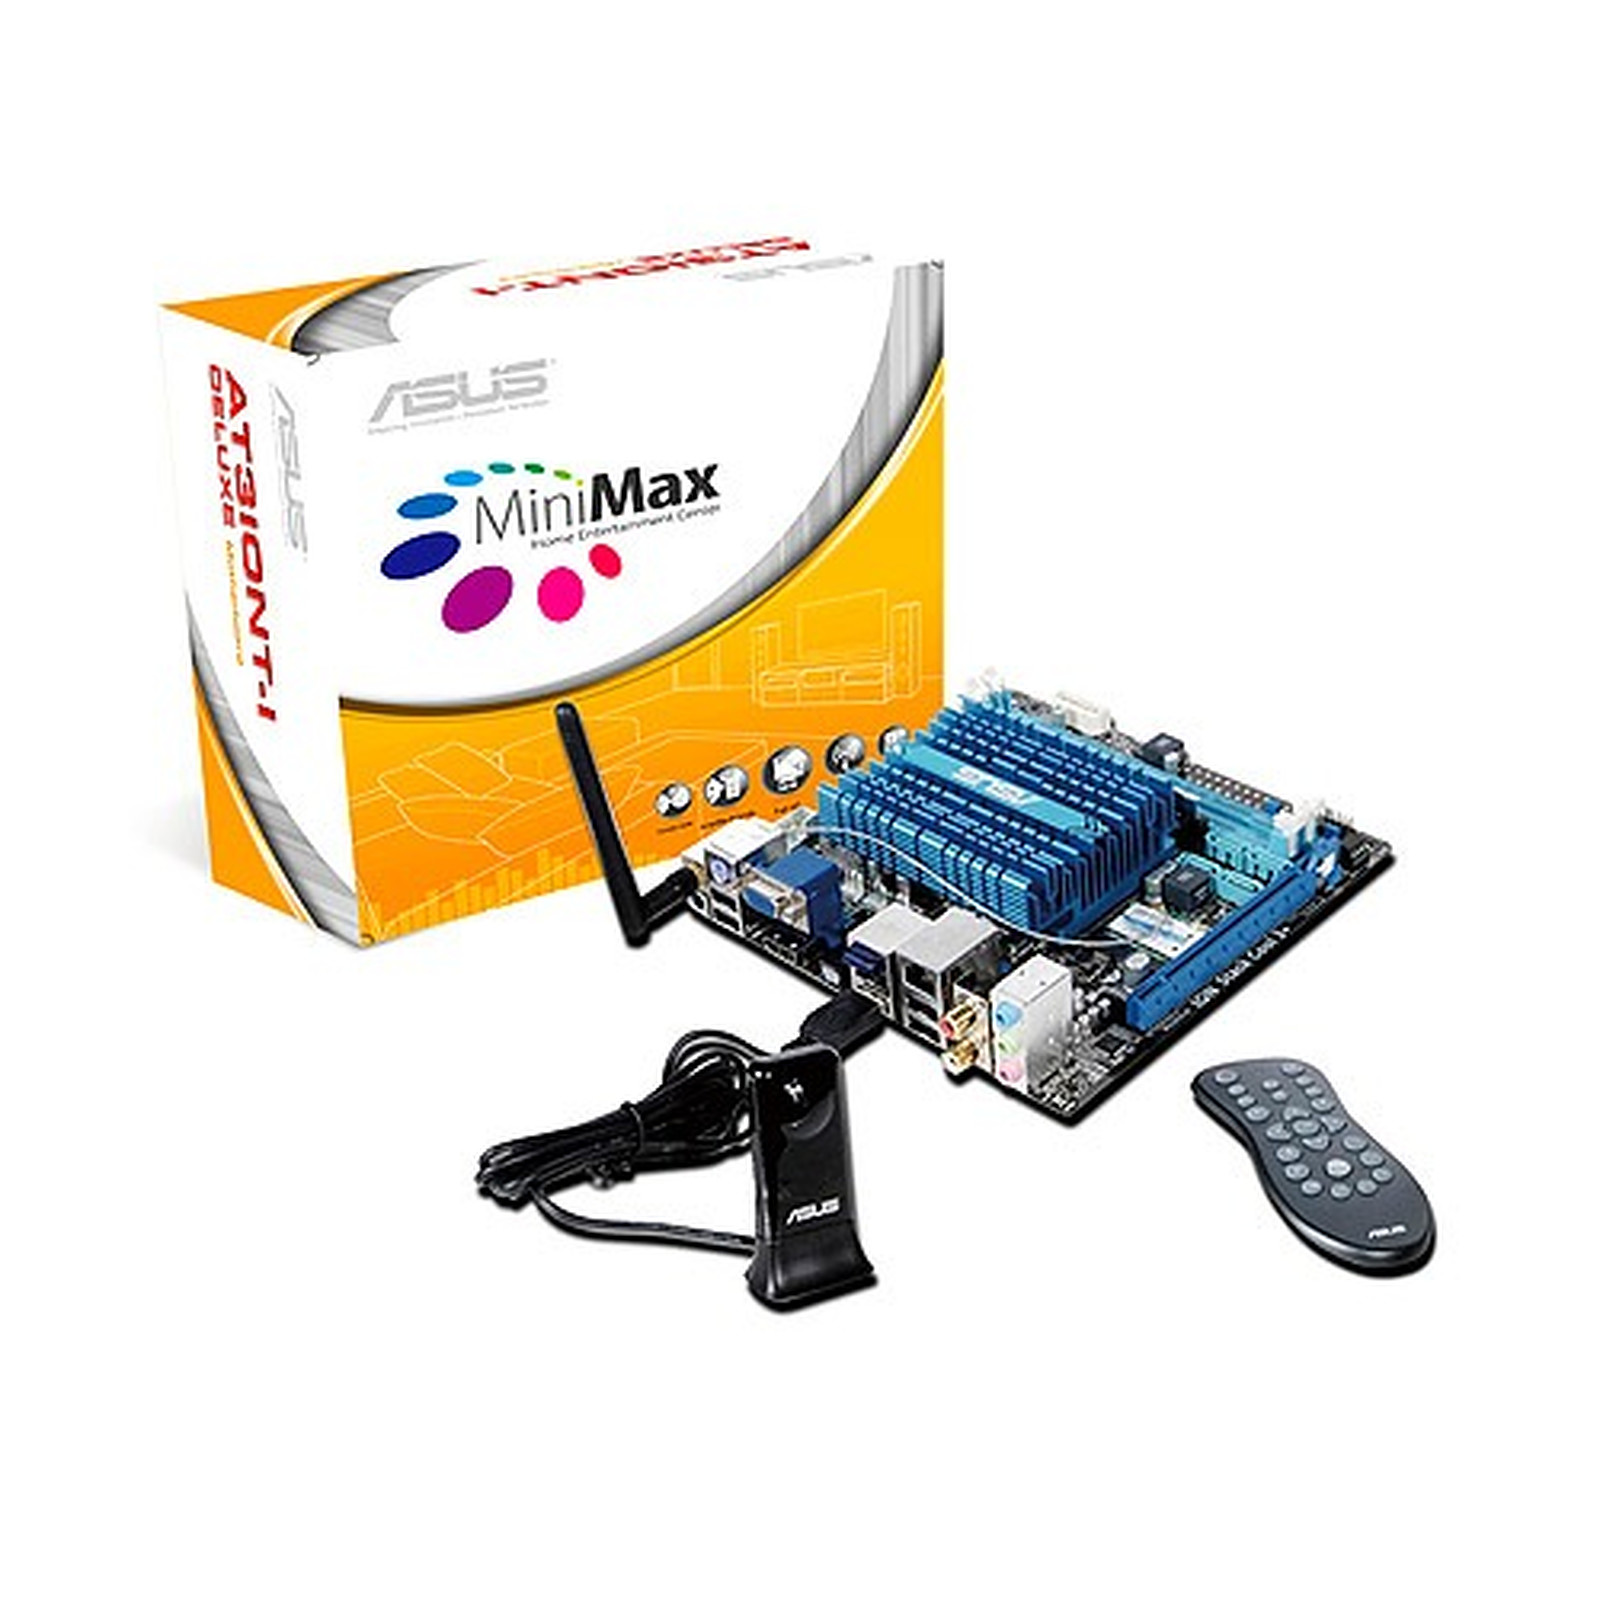 ASUS AT3IONT-I Deluxe